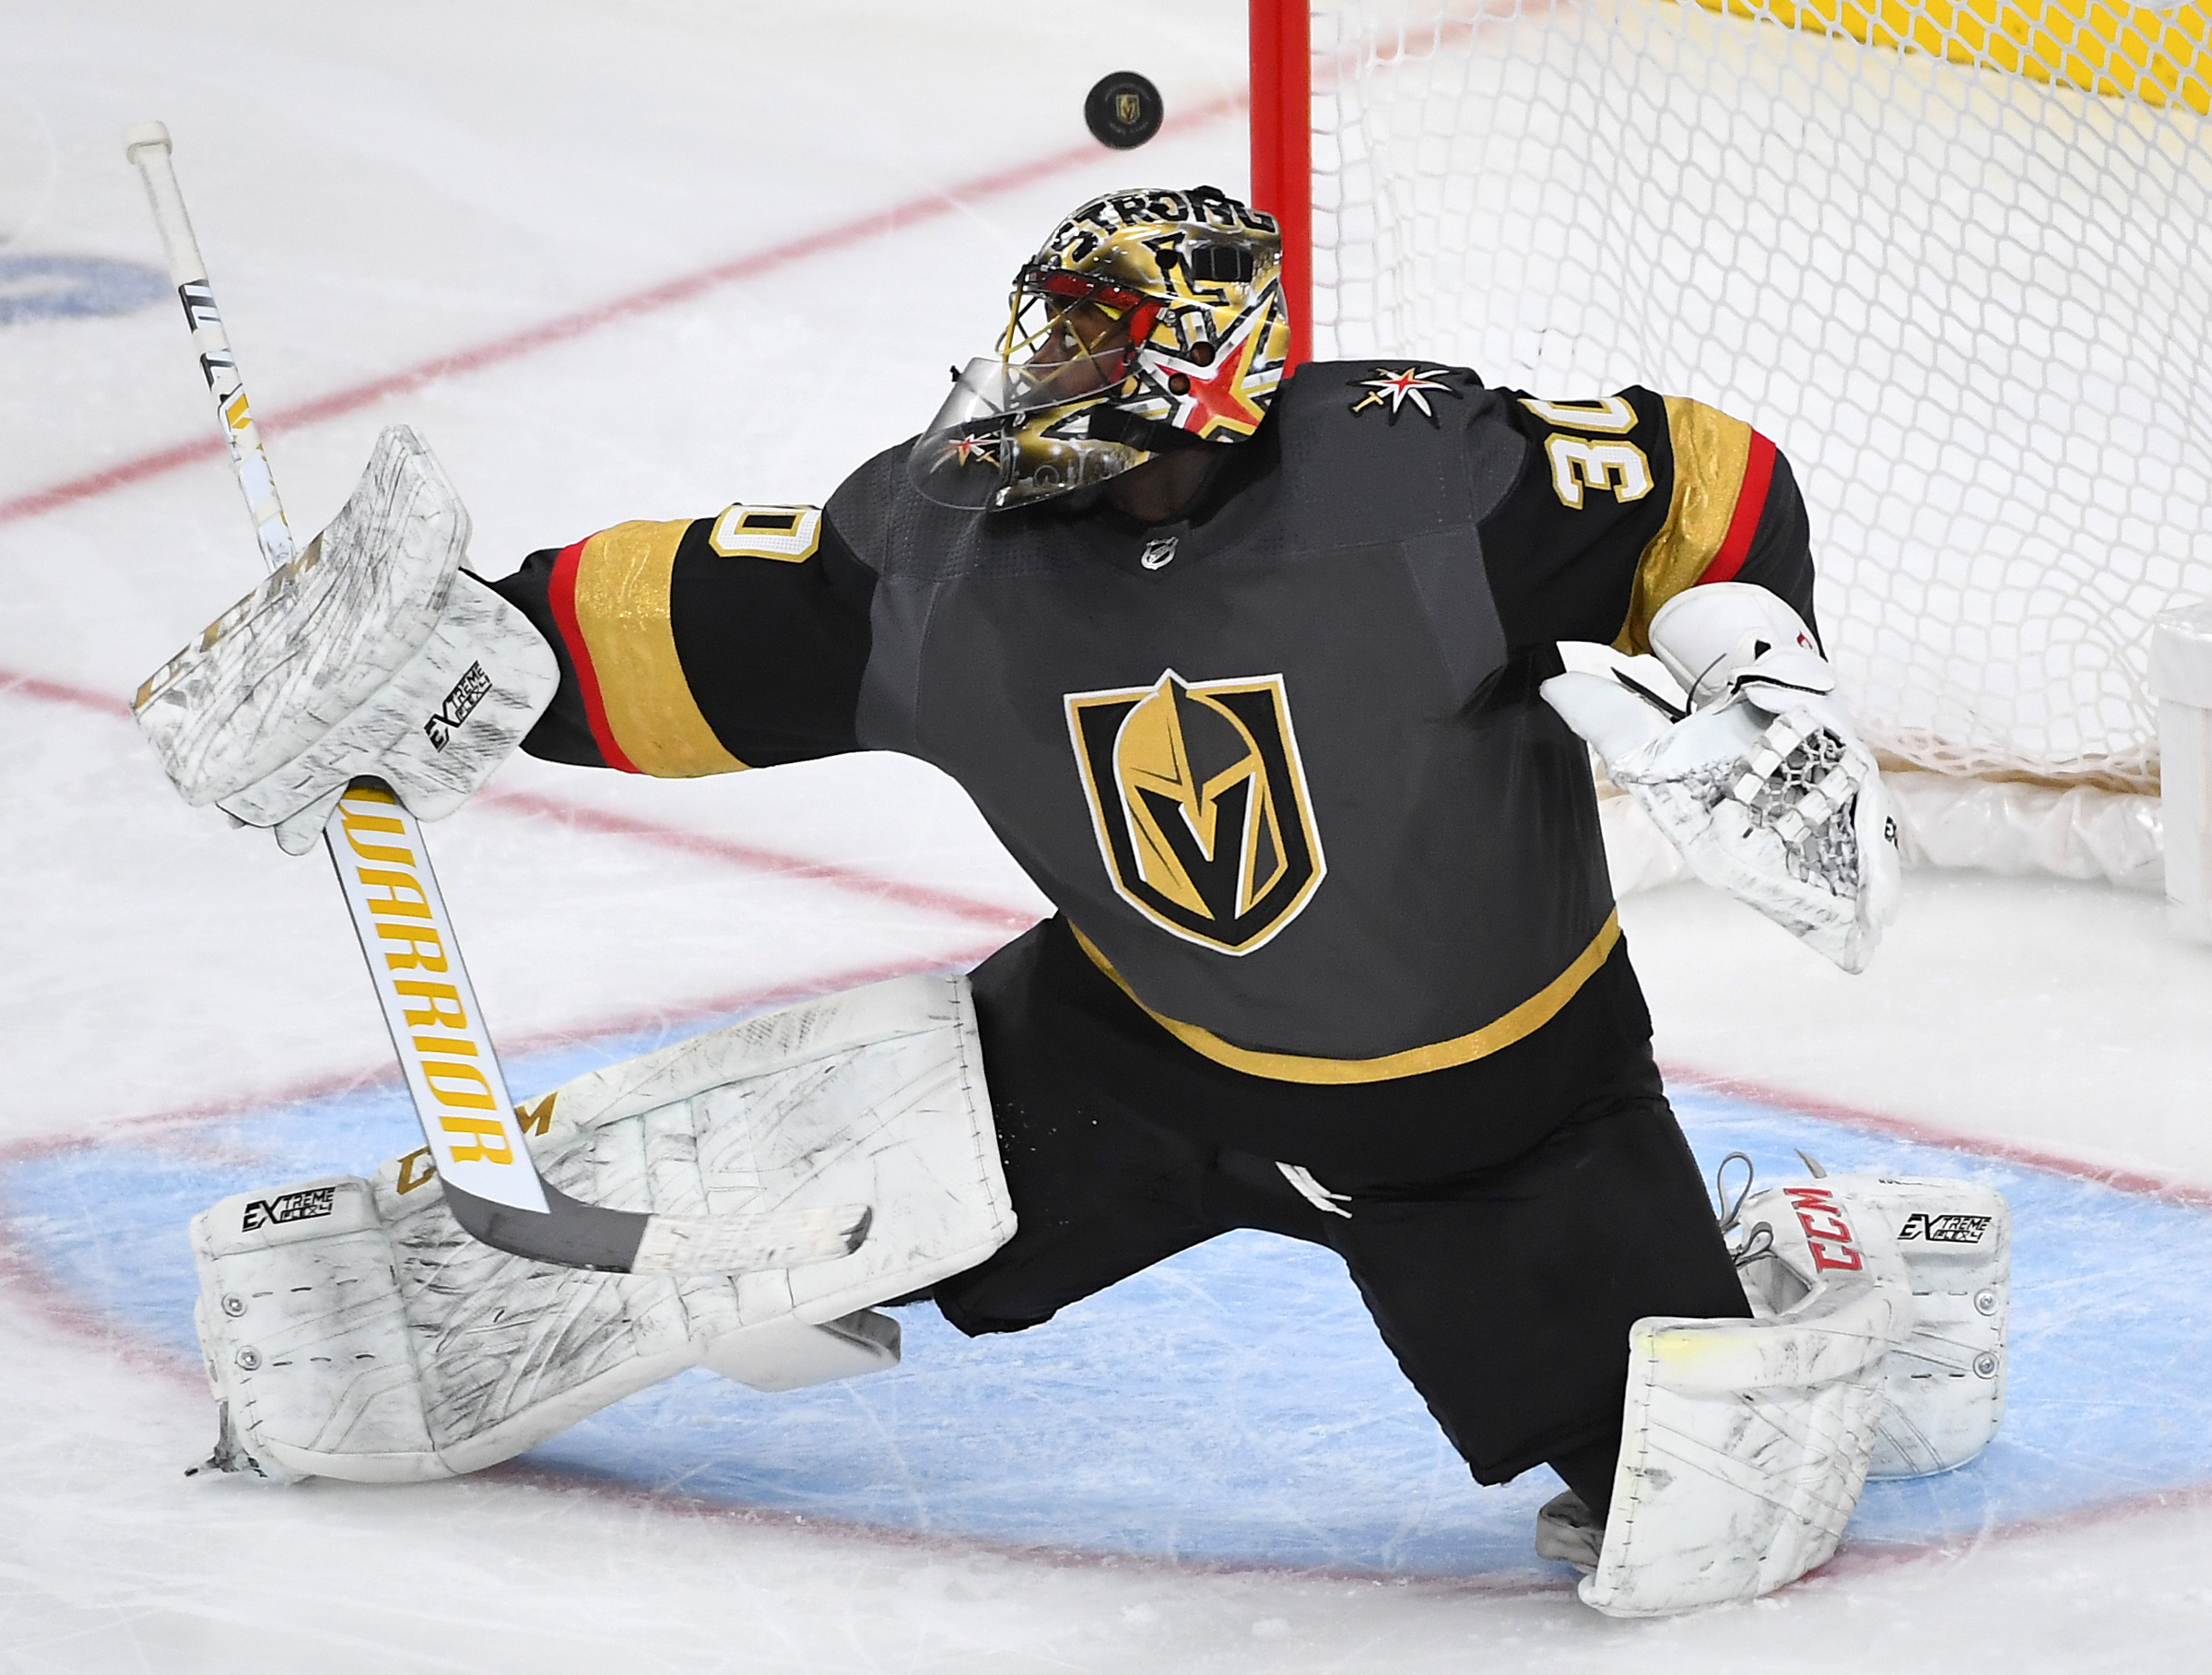 Dec 8, 2019; Las Vegas, NV, USA; Vegas Golden Knights goaltender Malcolm Subban (30) reaches to deflect a shot that goes wide of his net during the third period against the New York Rangers at T-Mobile Arena.